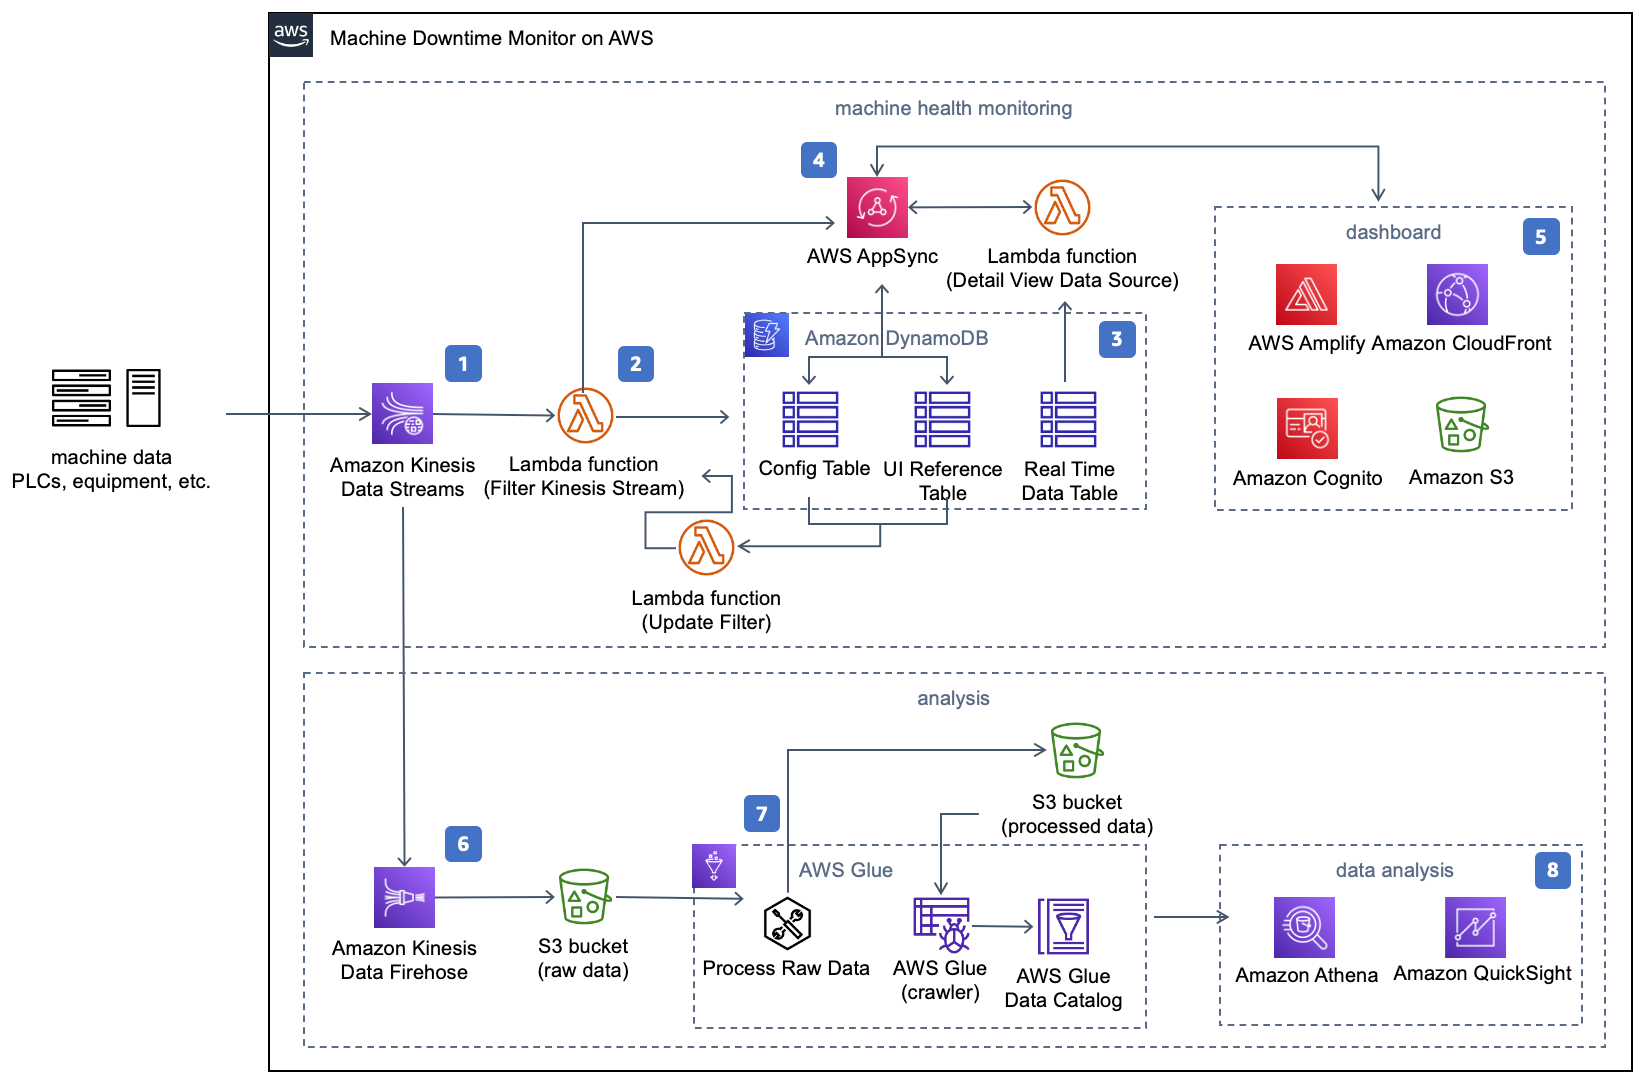 Machine Downtime Monitor on AWS | Architecture Flow Diagram